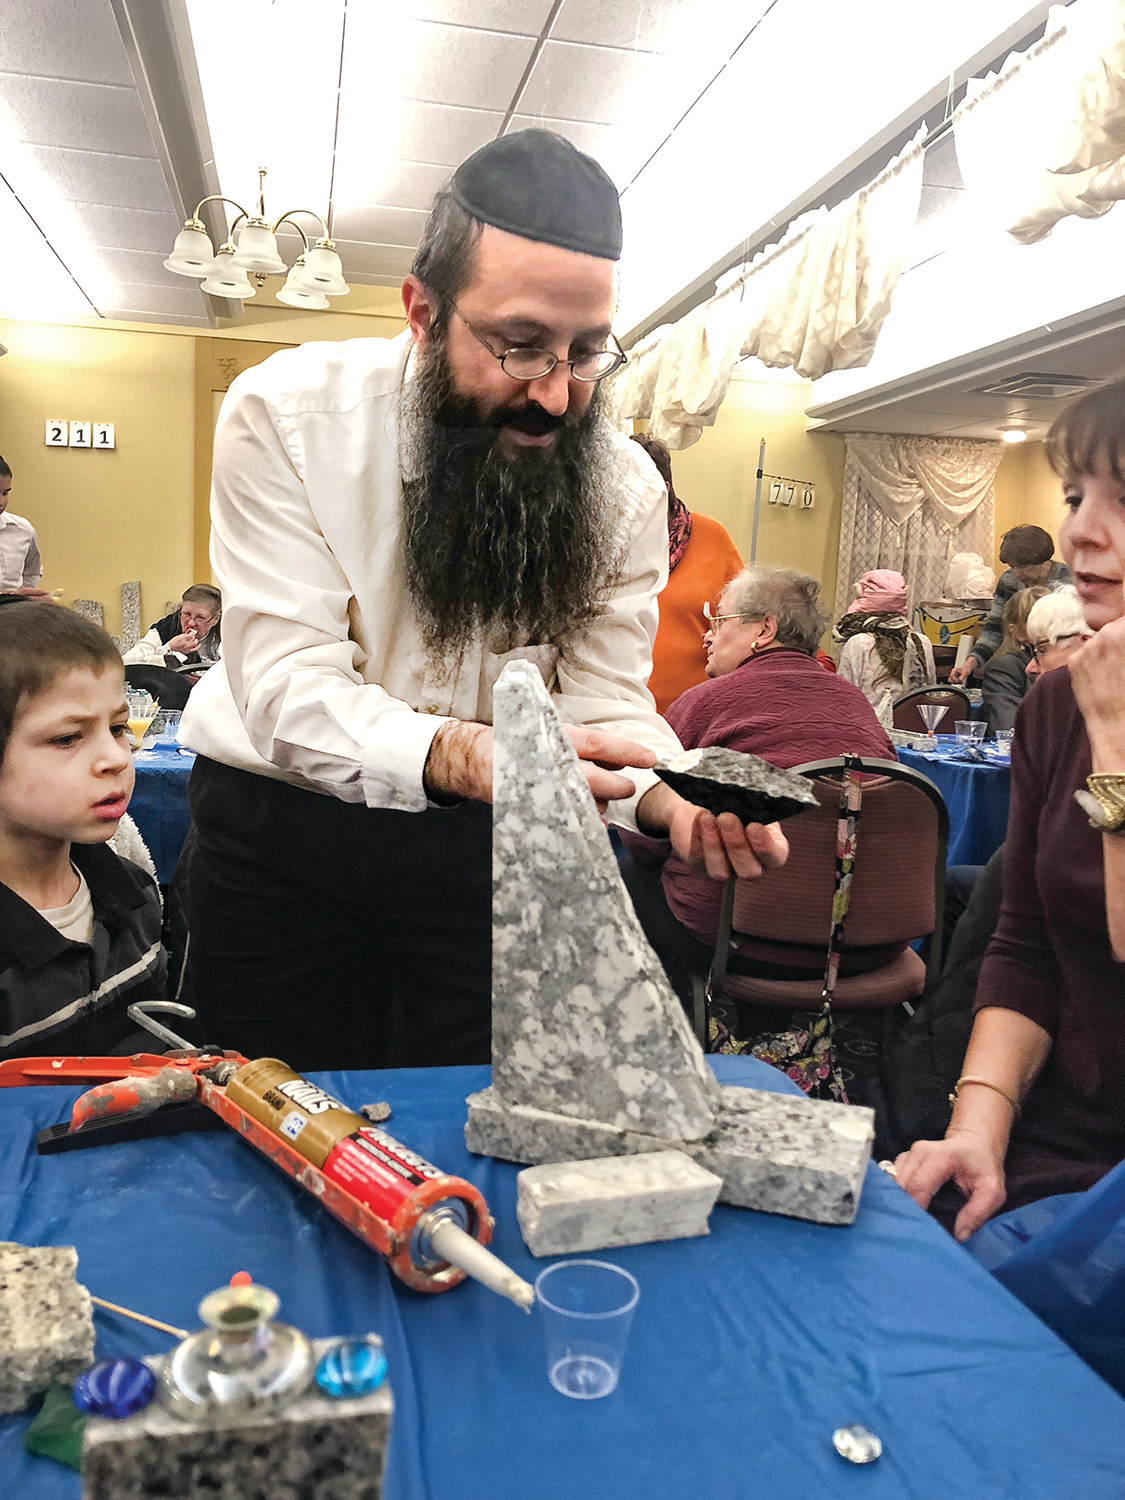 At a recent Menorahs and Martinis event hosted by West Bay Chabad, Beverly Paris reports that 40 to 50 ladies attended and all went home with a handmade menorah. Shoshana Laufer hosted and Rabbi Yossi Laufer helped. Paris reports there was good food and good company as well as beautiful menorahs.